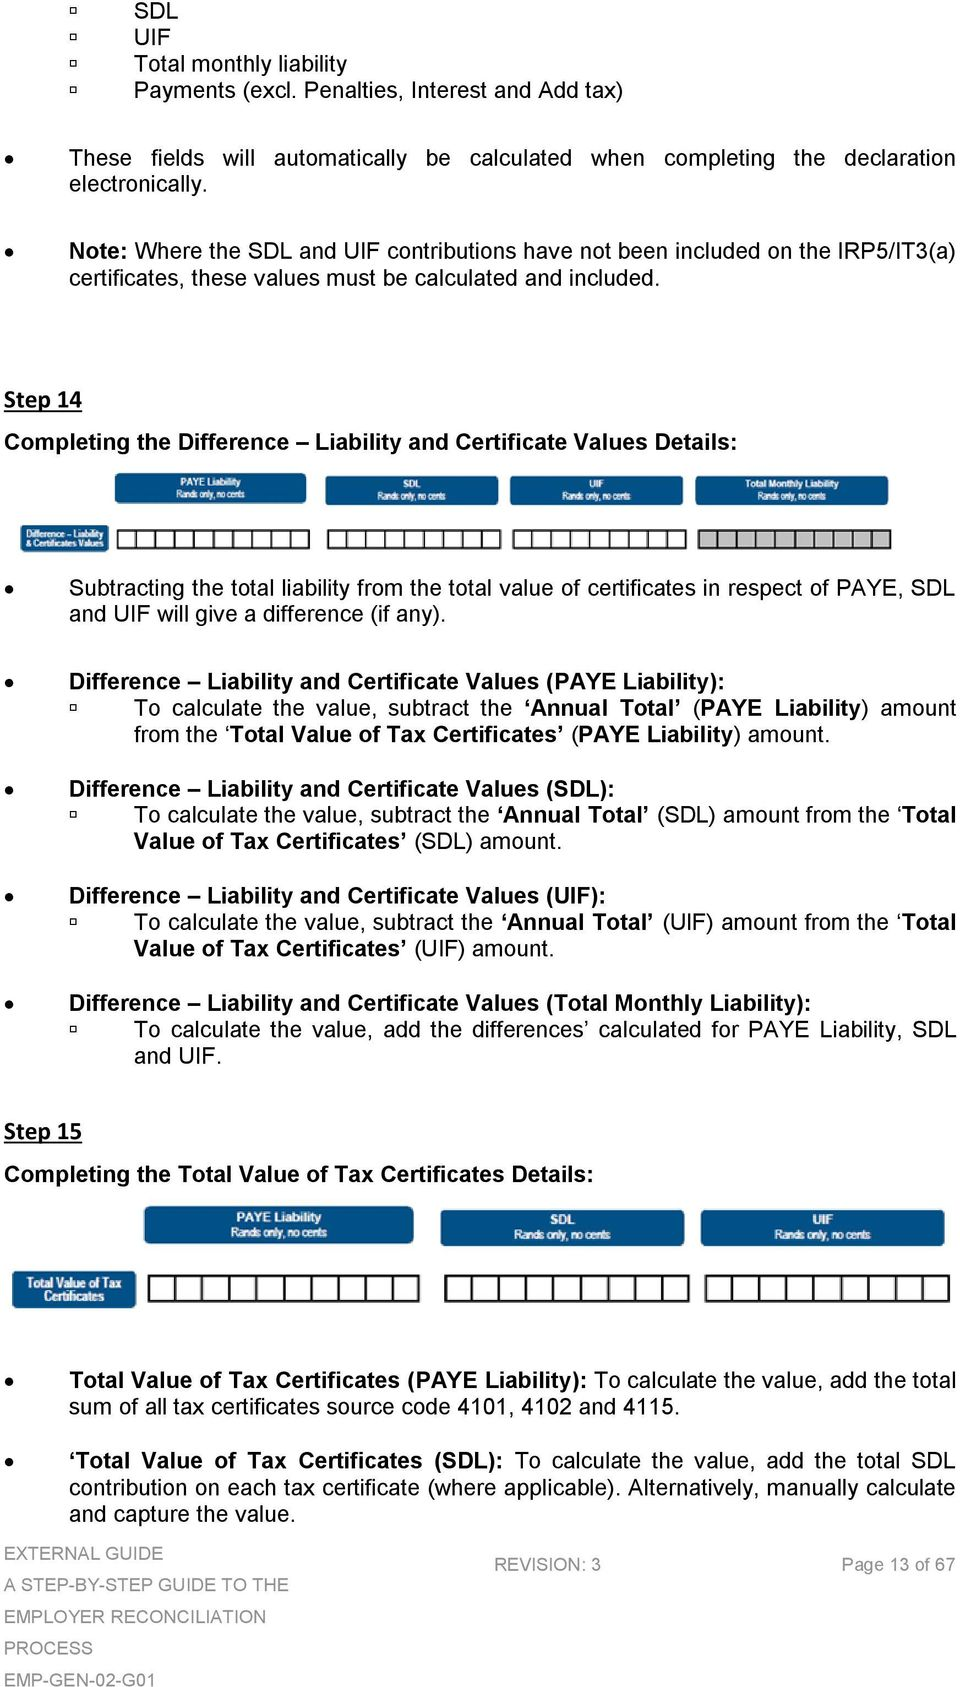 Step 14 Completing the Difference Liability and Certificate Values Details: Subtracting the total liability from the total value of certificates in respect of PAYE, SDL and UIF will give a difference